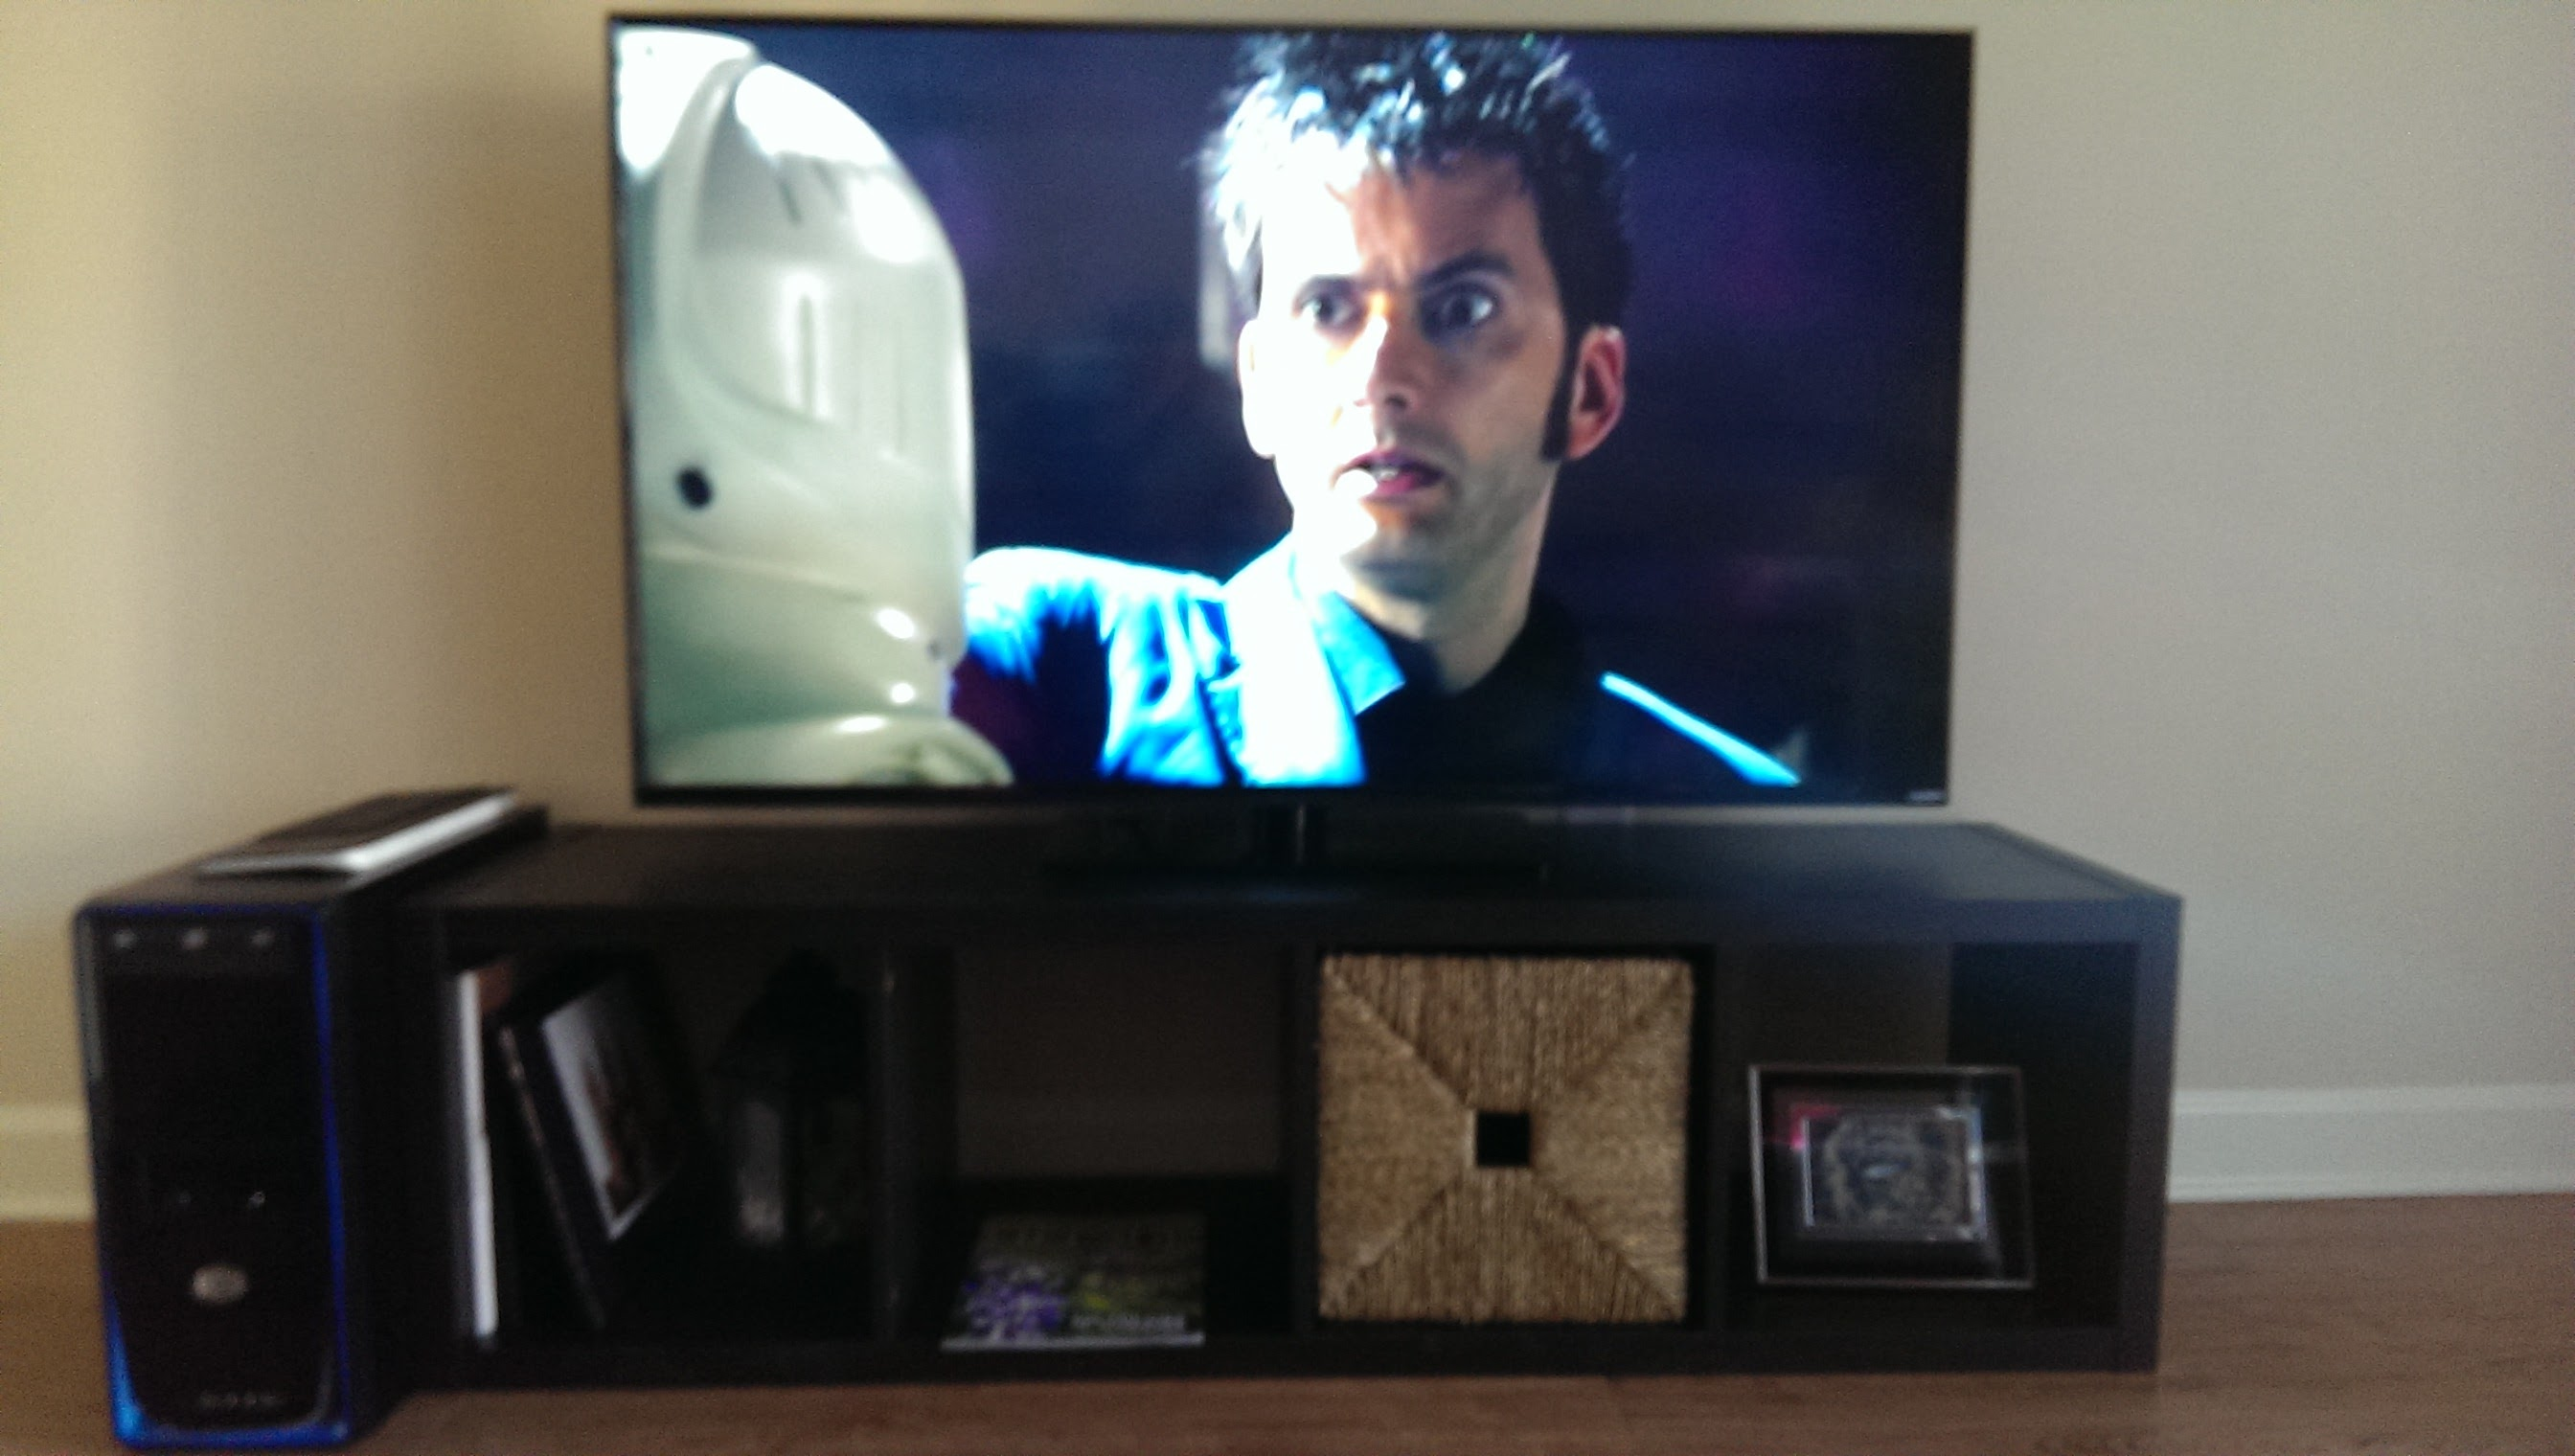 Entertainment center with a TV showing Doctor Who